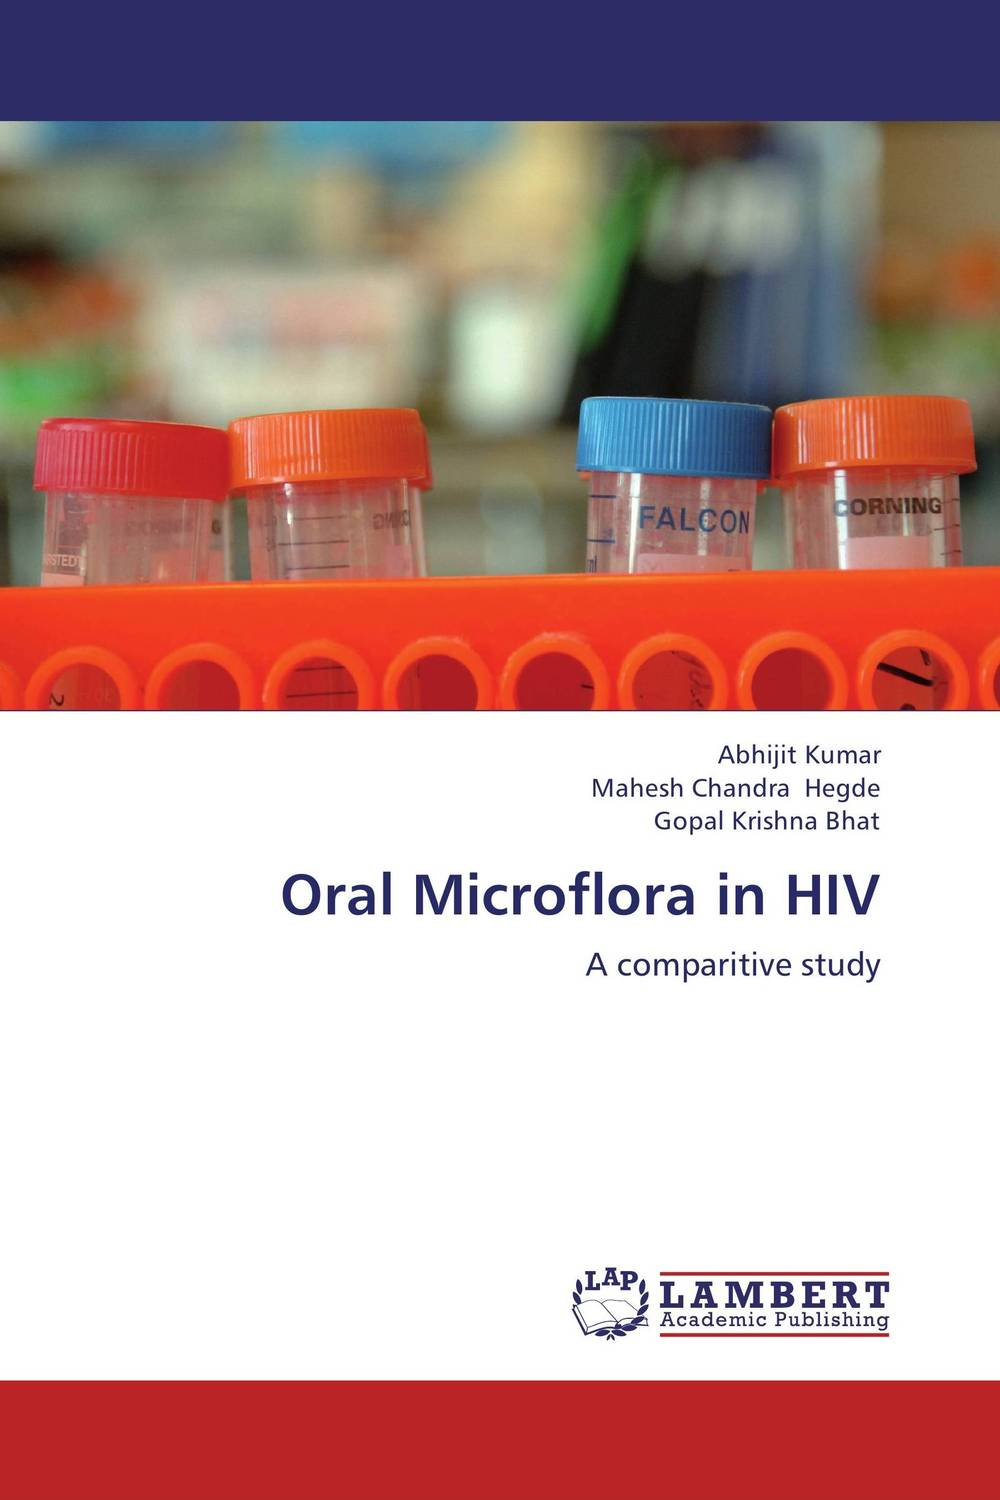 Oral Microflora in HIV family caregiving in the new normal